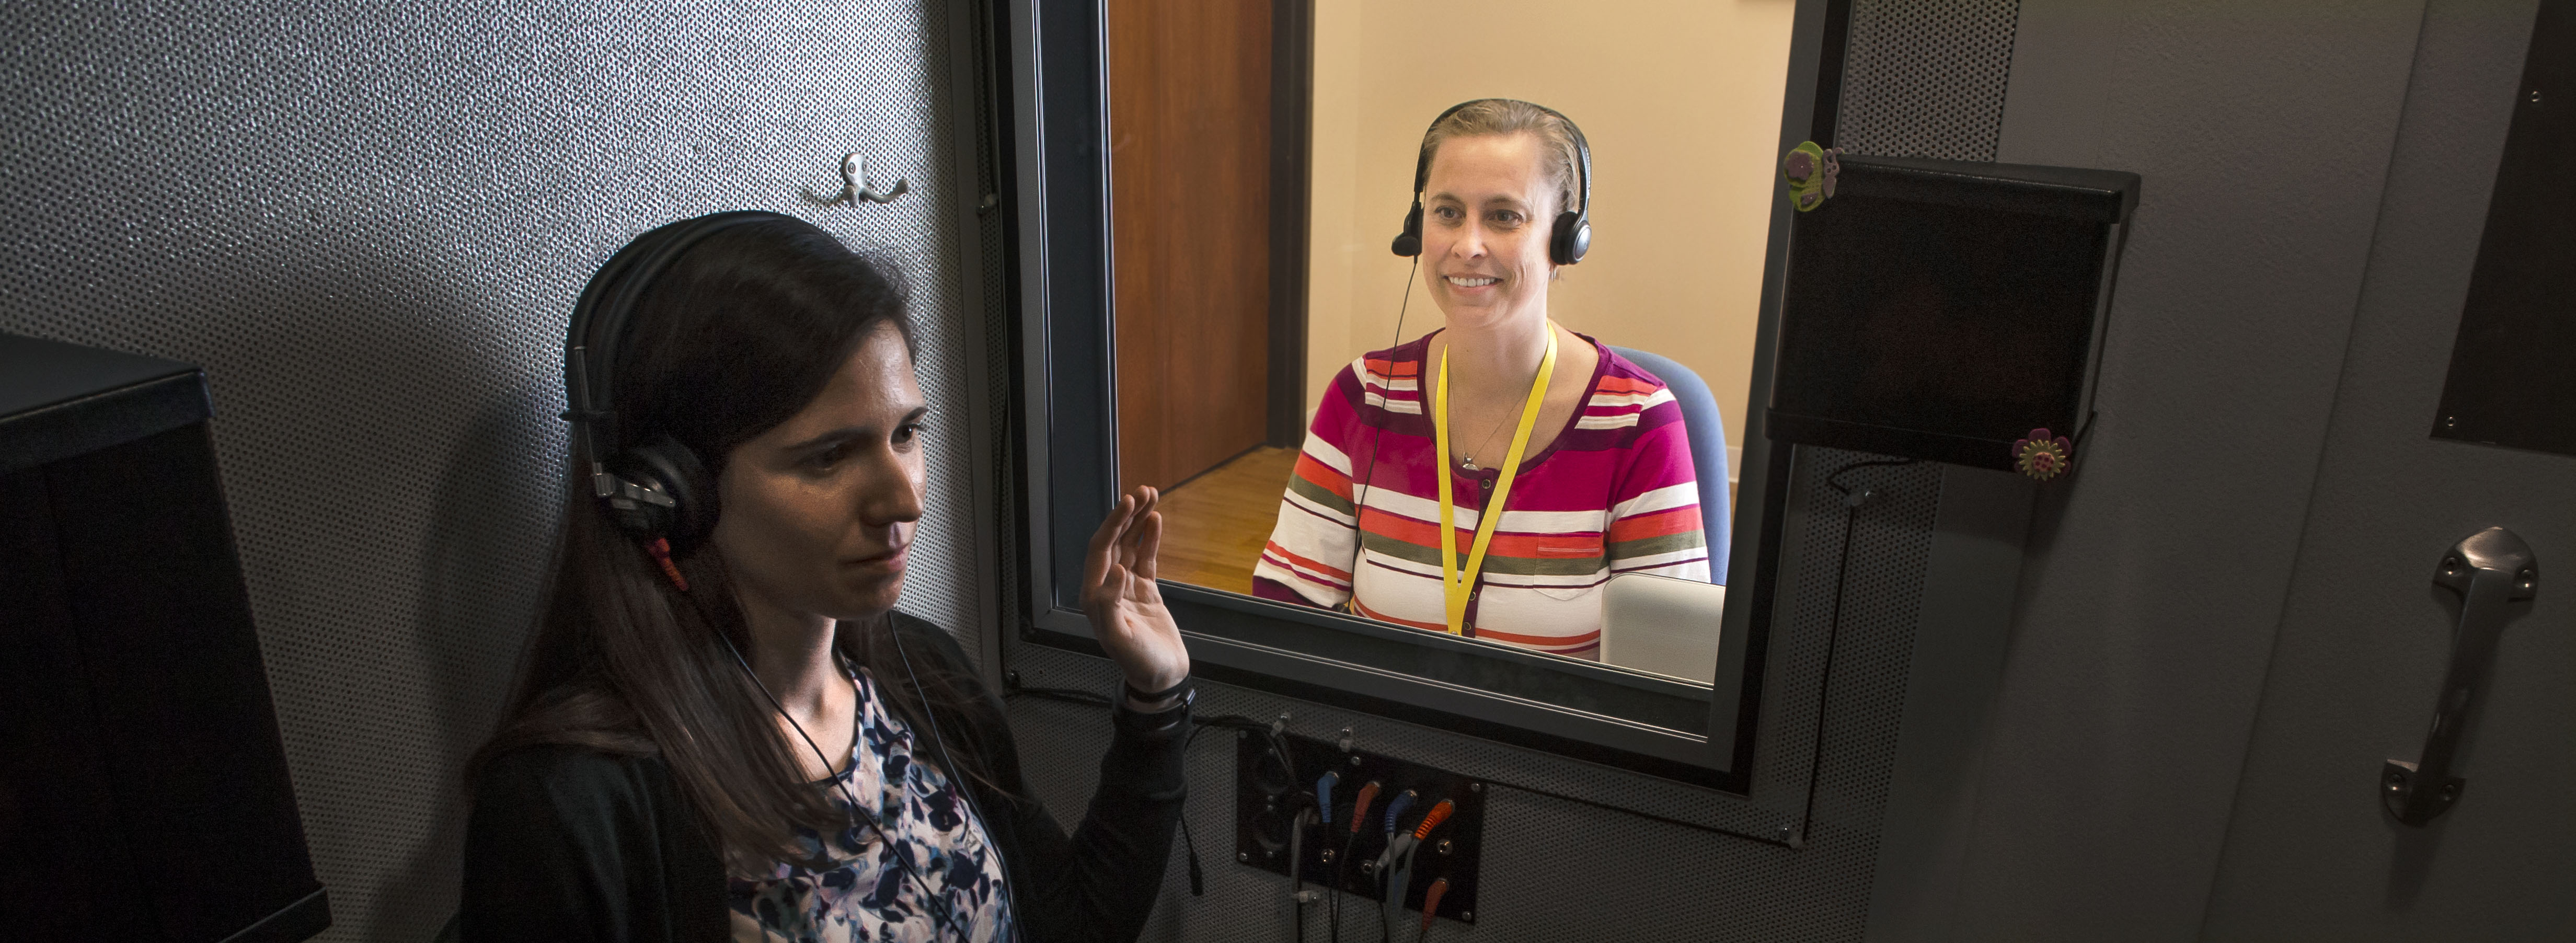 Laura Burger performs a hearing test on a patient in a soundproof booth